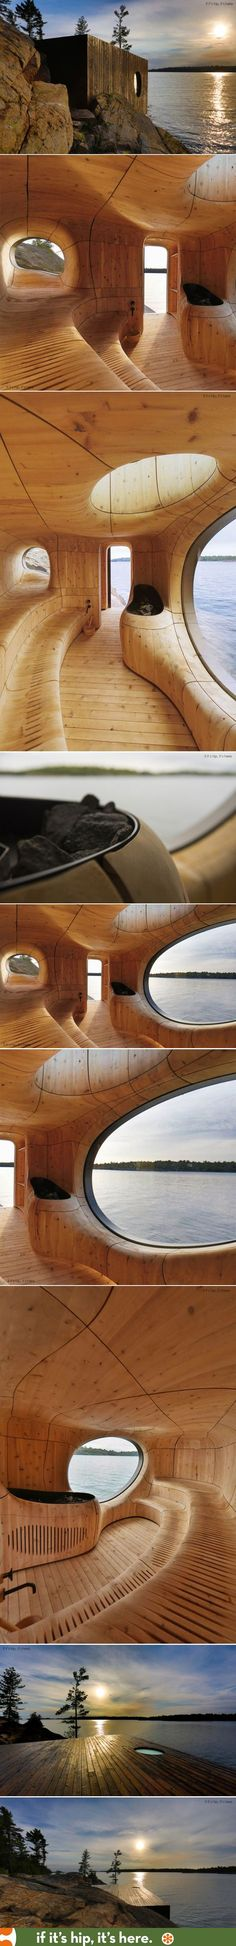 The Grotto Sauna is a prefab sauna designed and fabricated using the latest 3D technology. | http://www.ifitshipitshere.com/grotto-sauna-amporphic-prefab-edge-private-island/